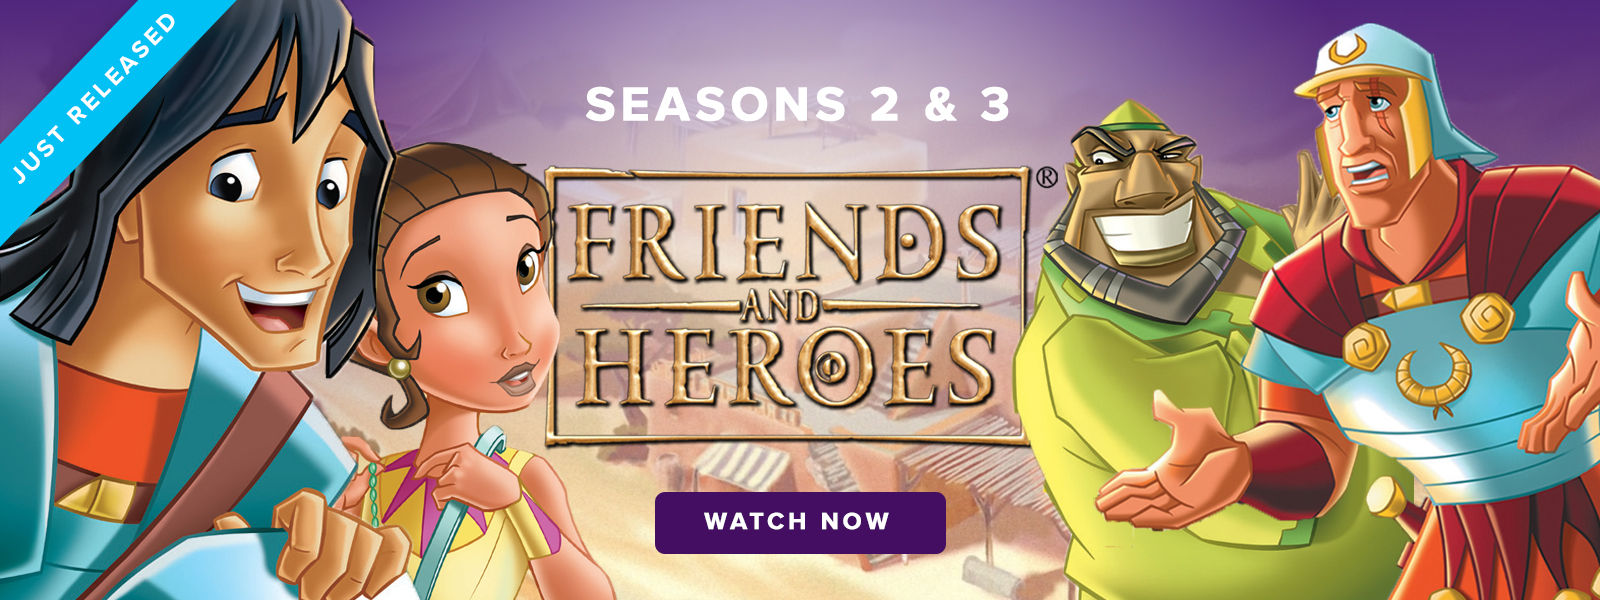 Friends and Heroes 2 & 3